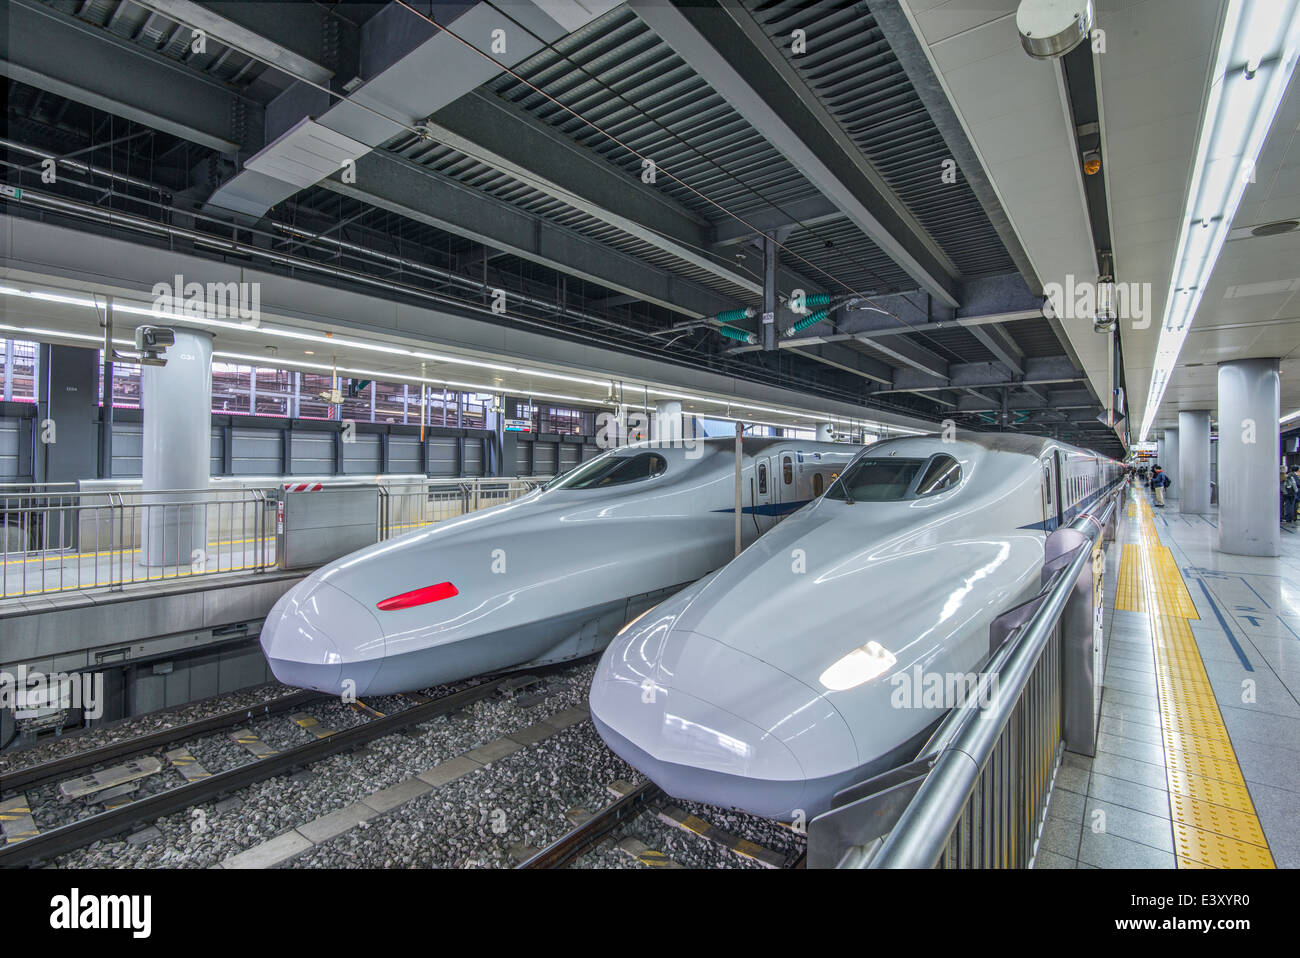 High speed trains in station, Tokyo, Japan - Stock Image